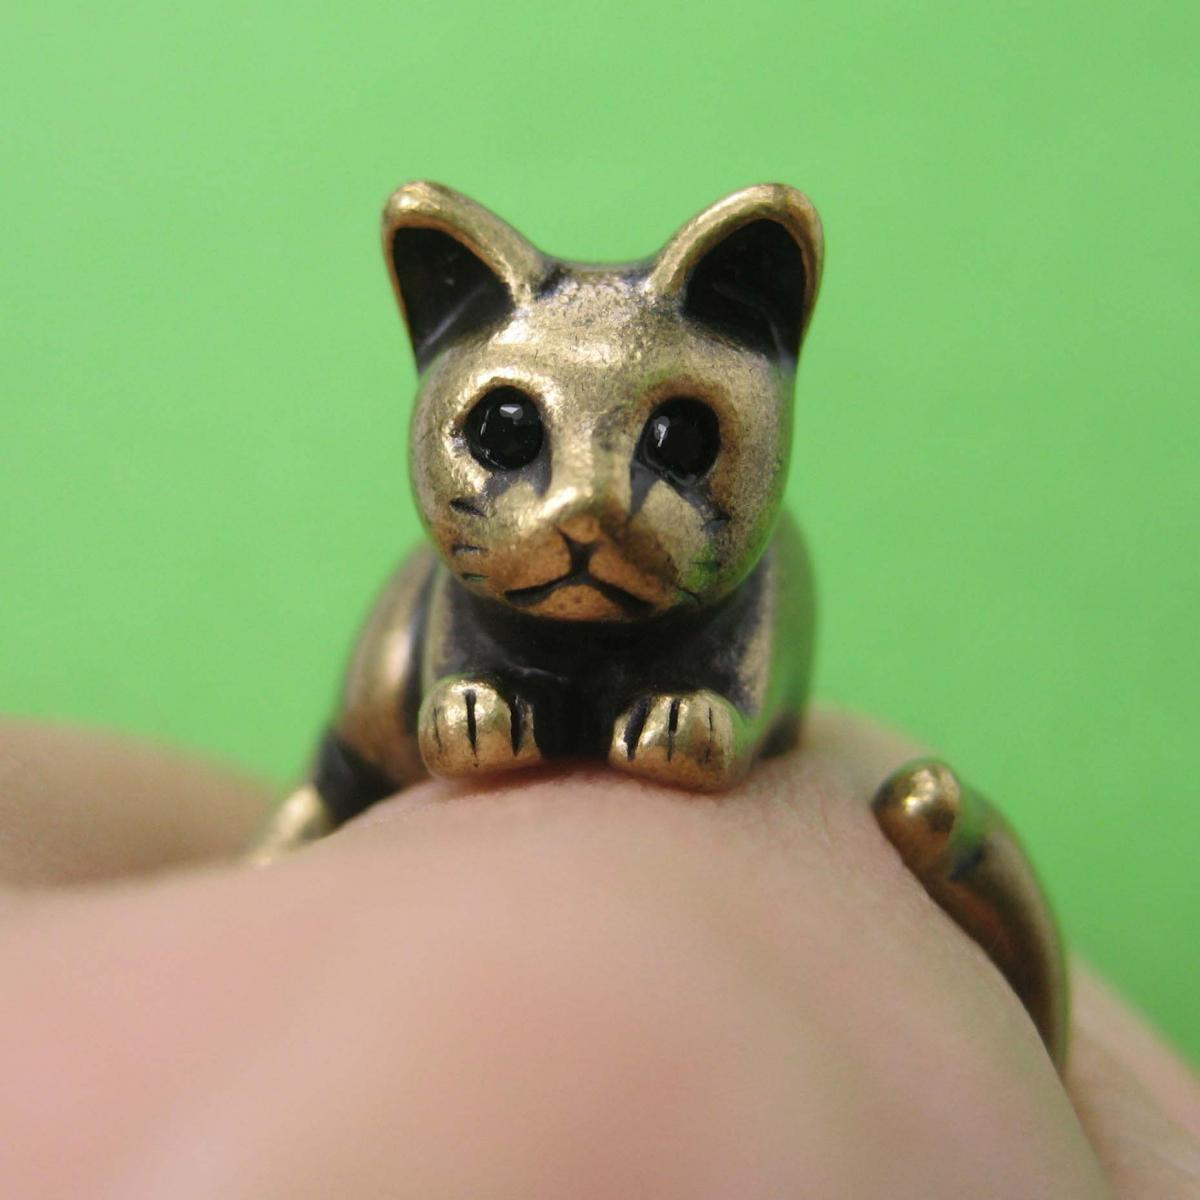 Kitty Cat Animal Pet Wrap Around Hug Ring in Brass Sizes 4 to 9